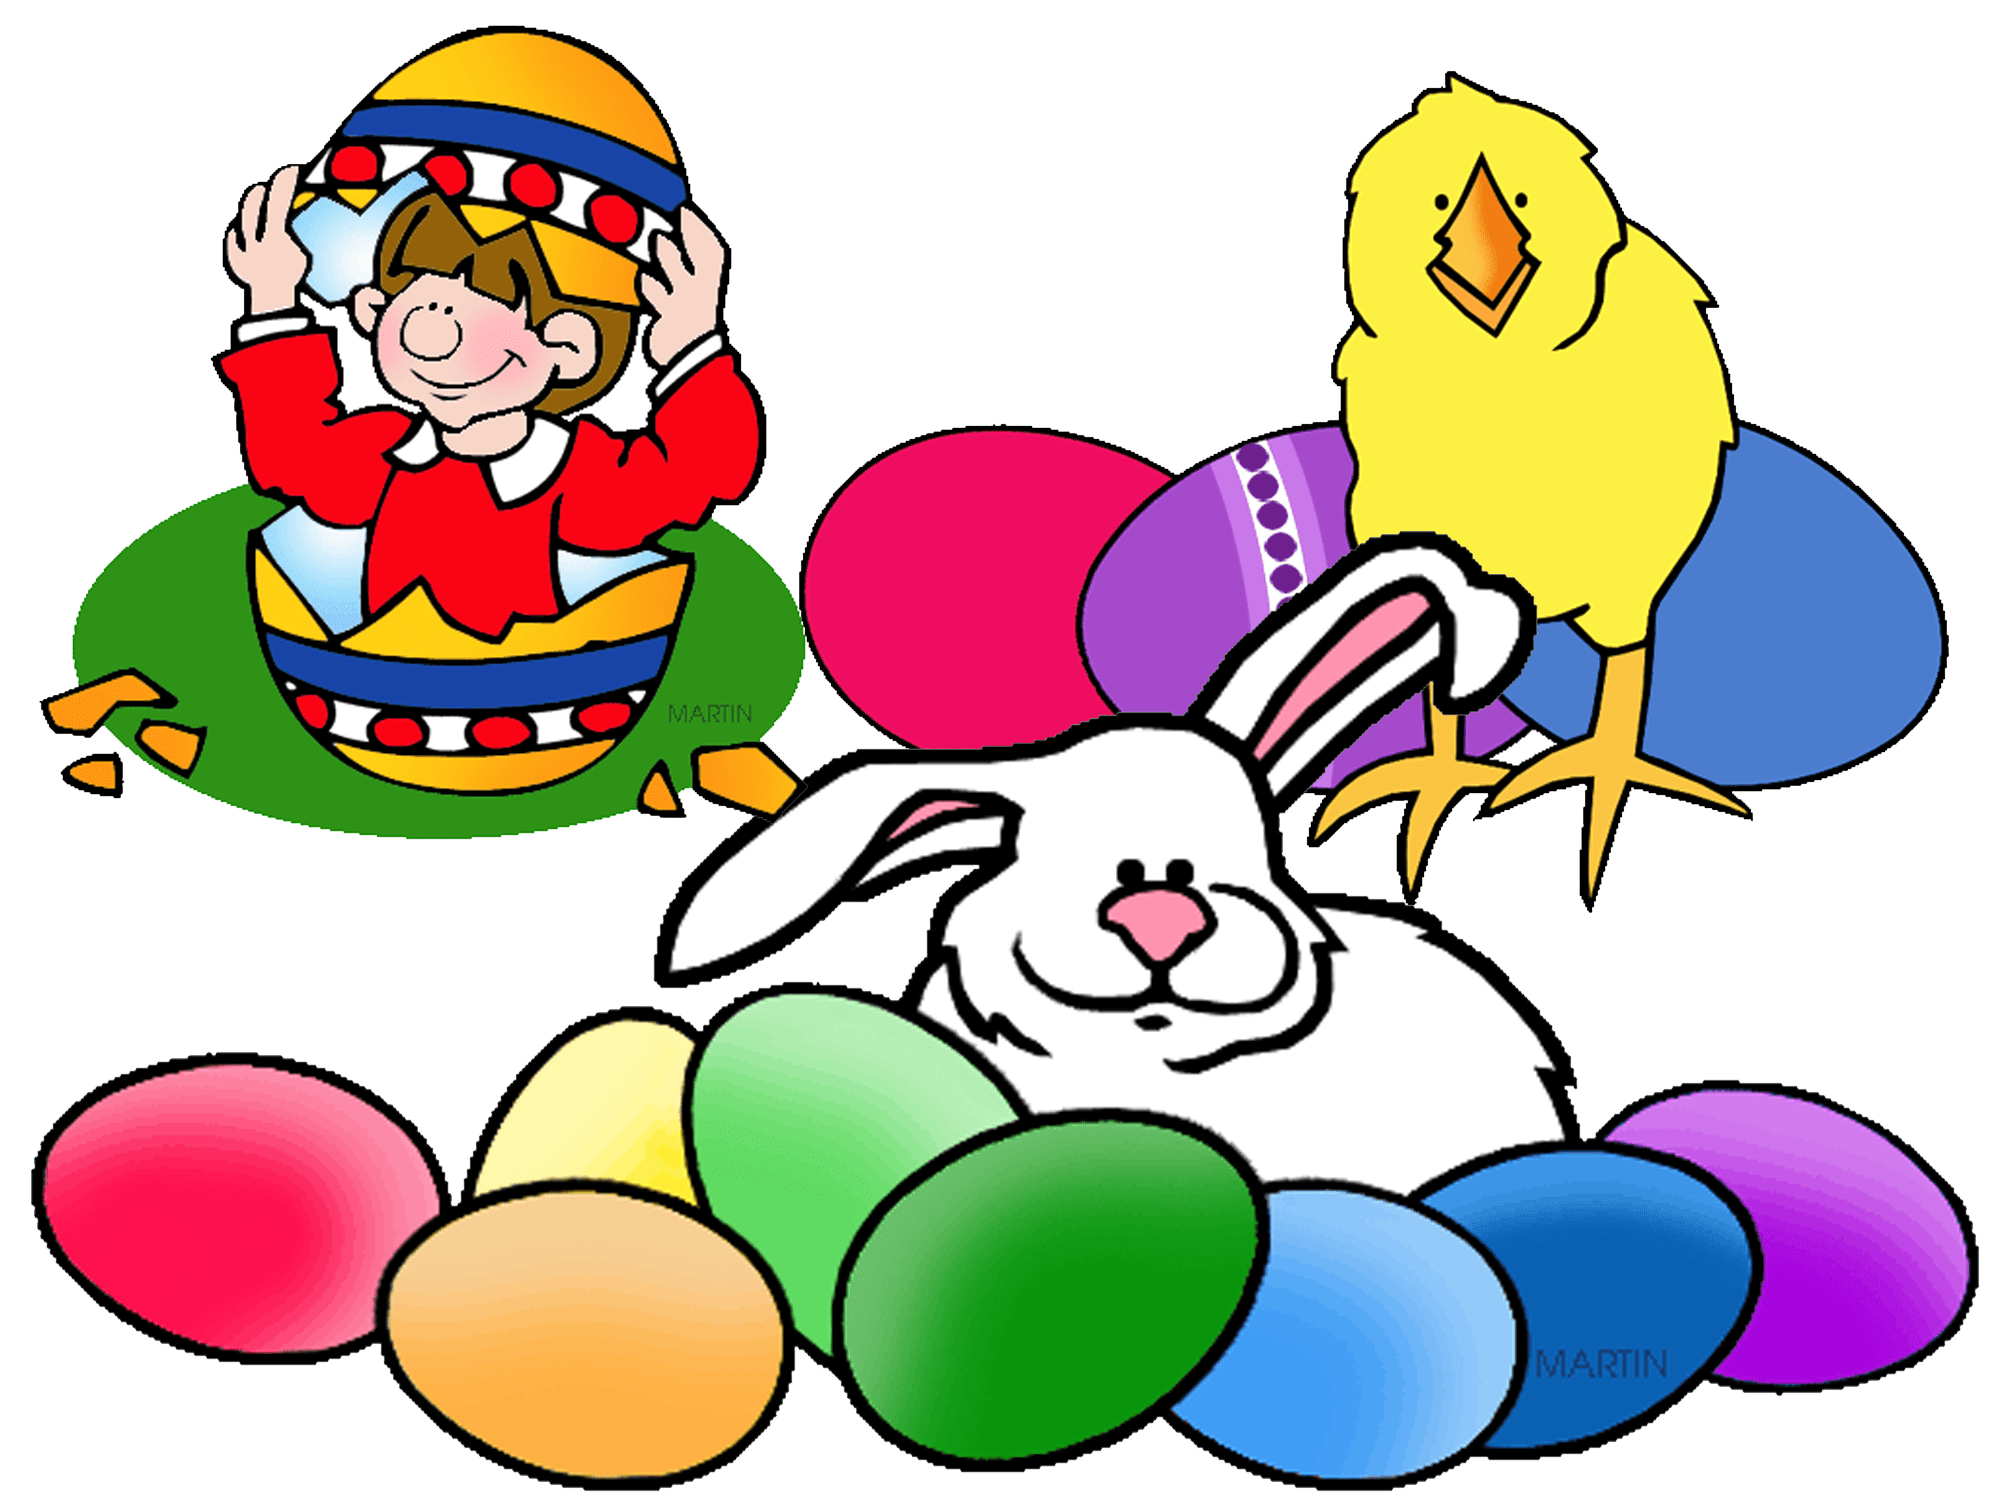 Easter egg hunt clipart phillip martin clip art library stock How to Get Free Easter Stuff clip art library stock